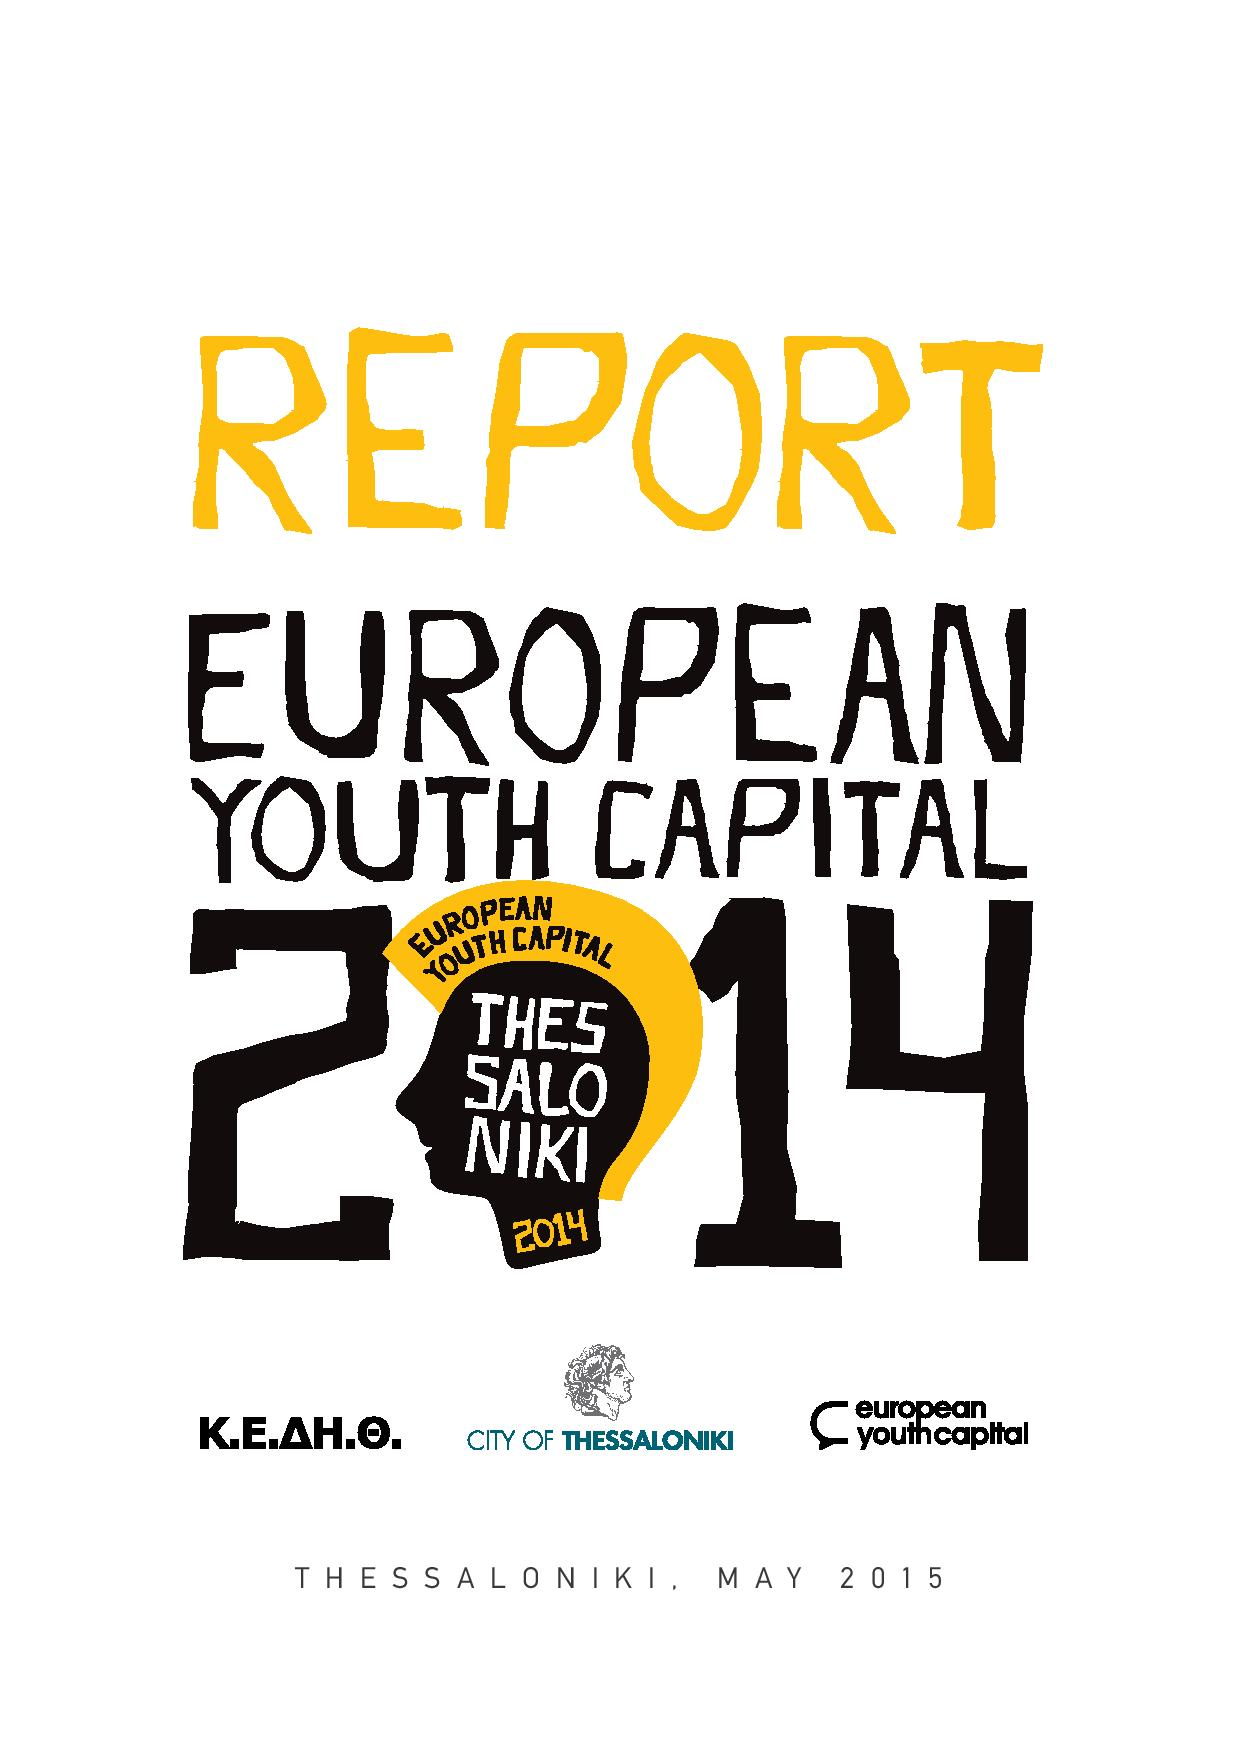 Report - European Youth Capital 2014 - Thessaloniki